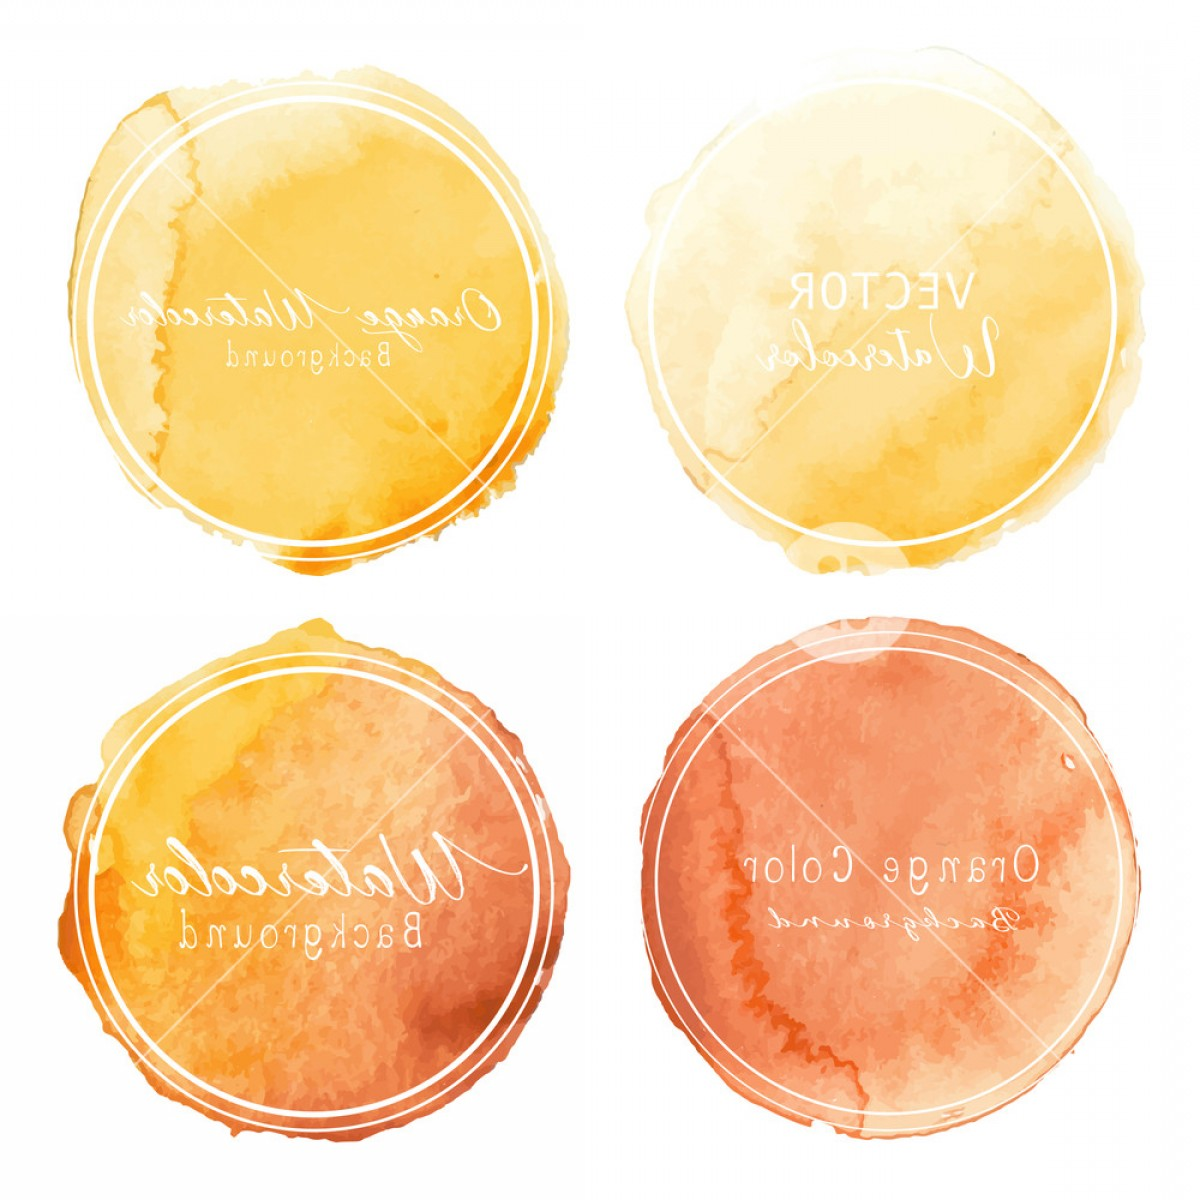 Orange Watercolor Vector Free: Orange Watercolor Circle Set On White Background Vector Illustration Boneavjrzjrh